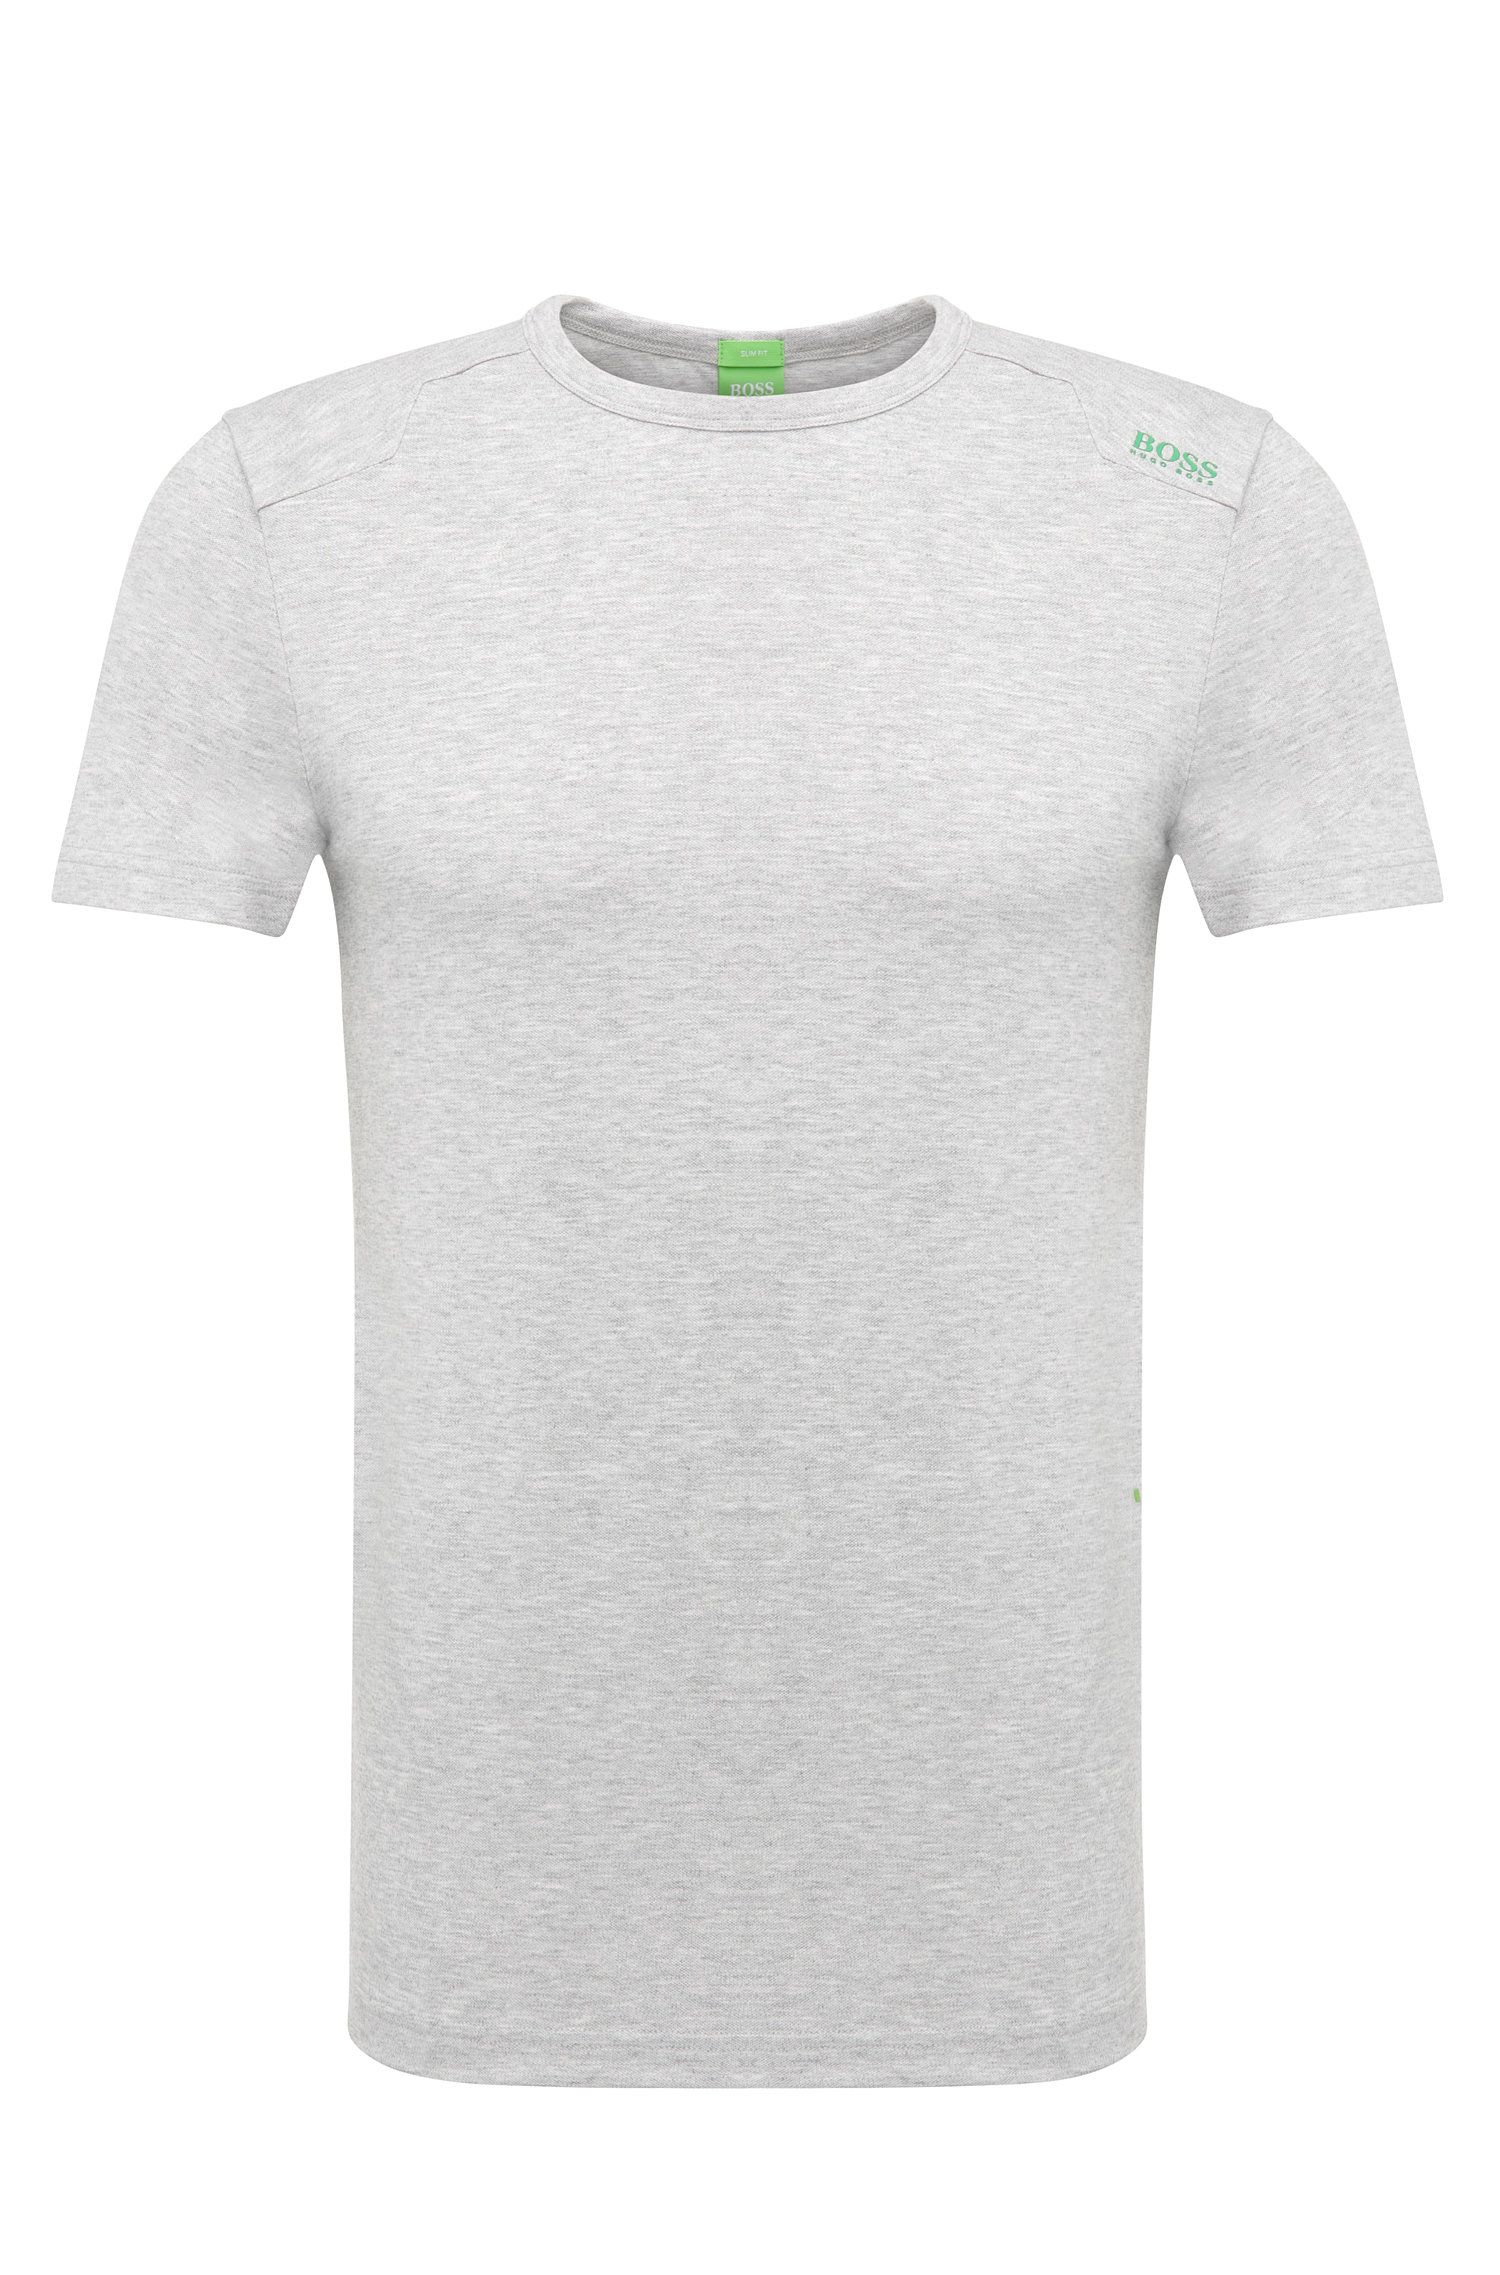 Slim-fit print T-shirt in stretch cotton blend: 'Teenox'